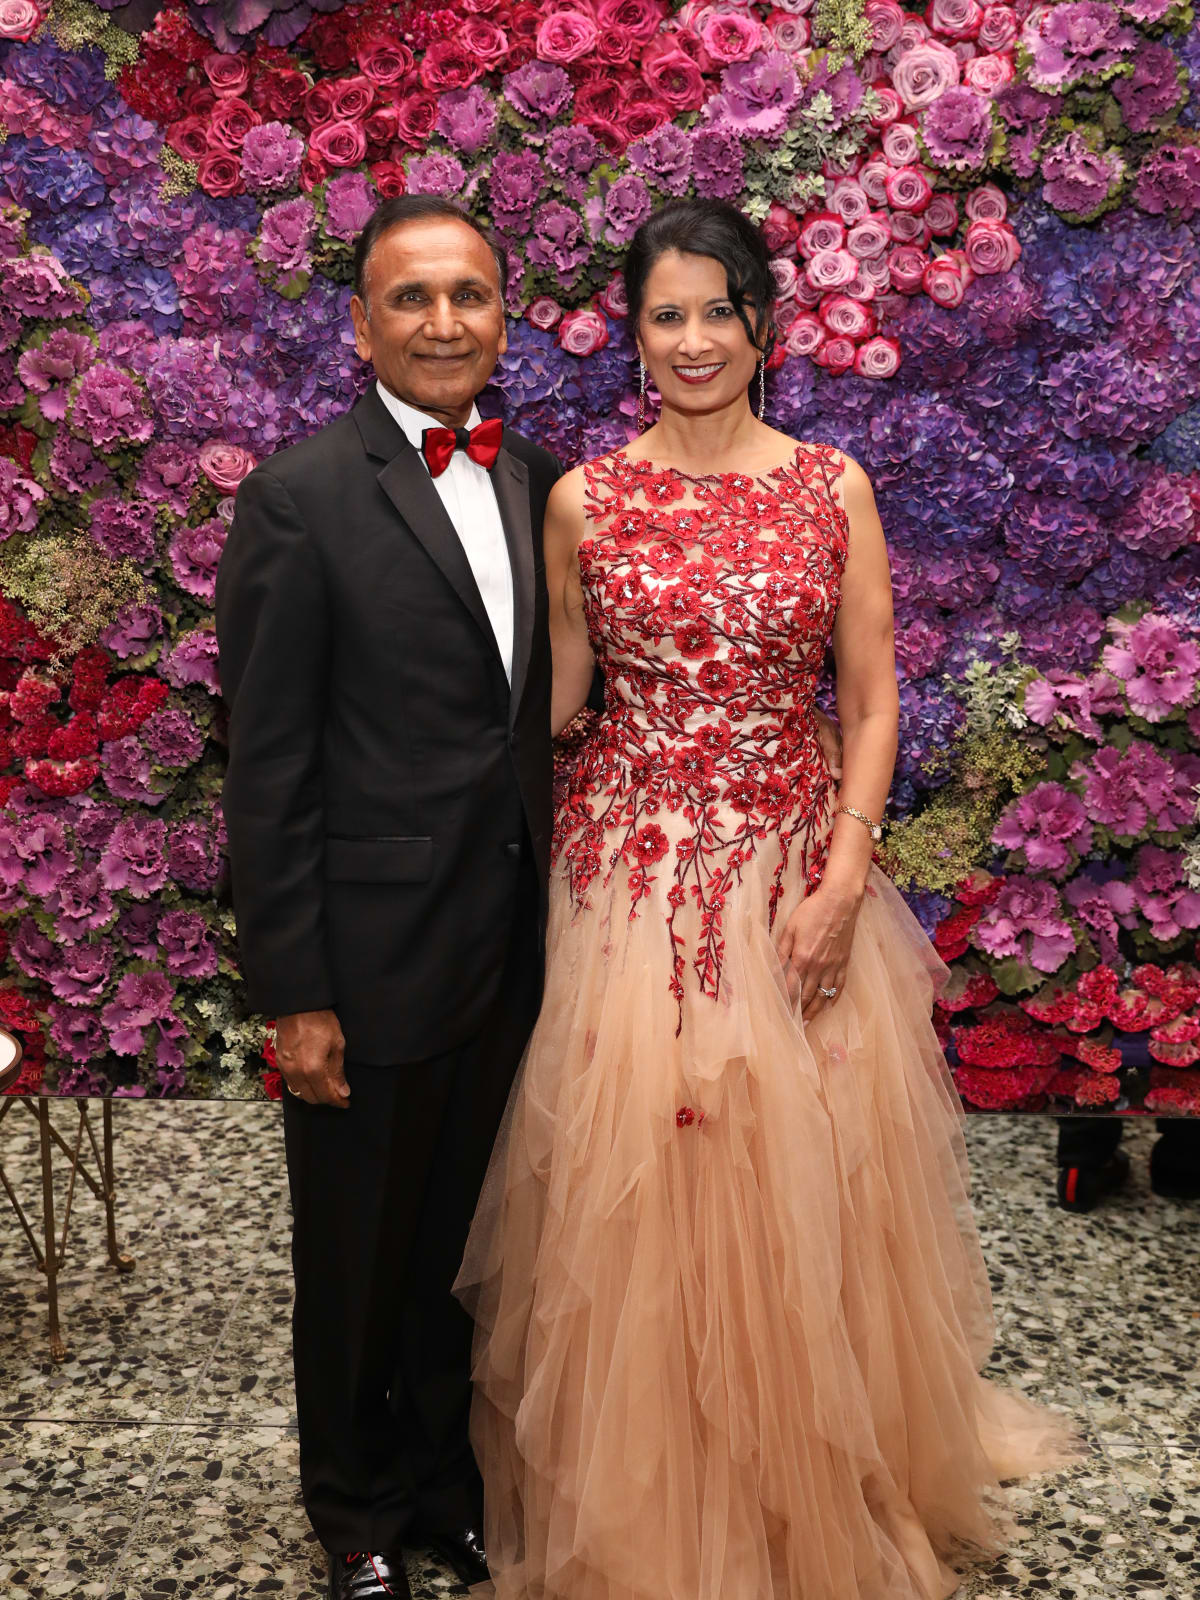 Suresh and Renu Khator at MFAH Grand Gala Ball